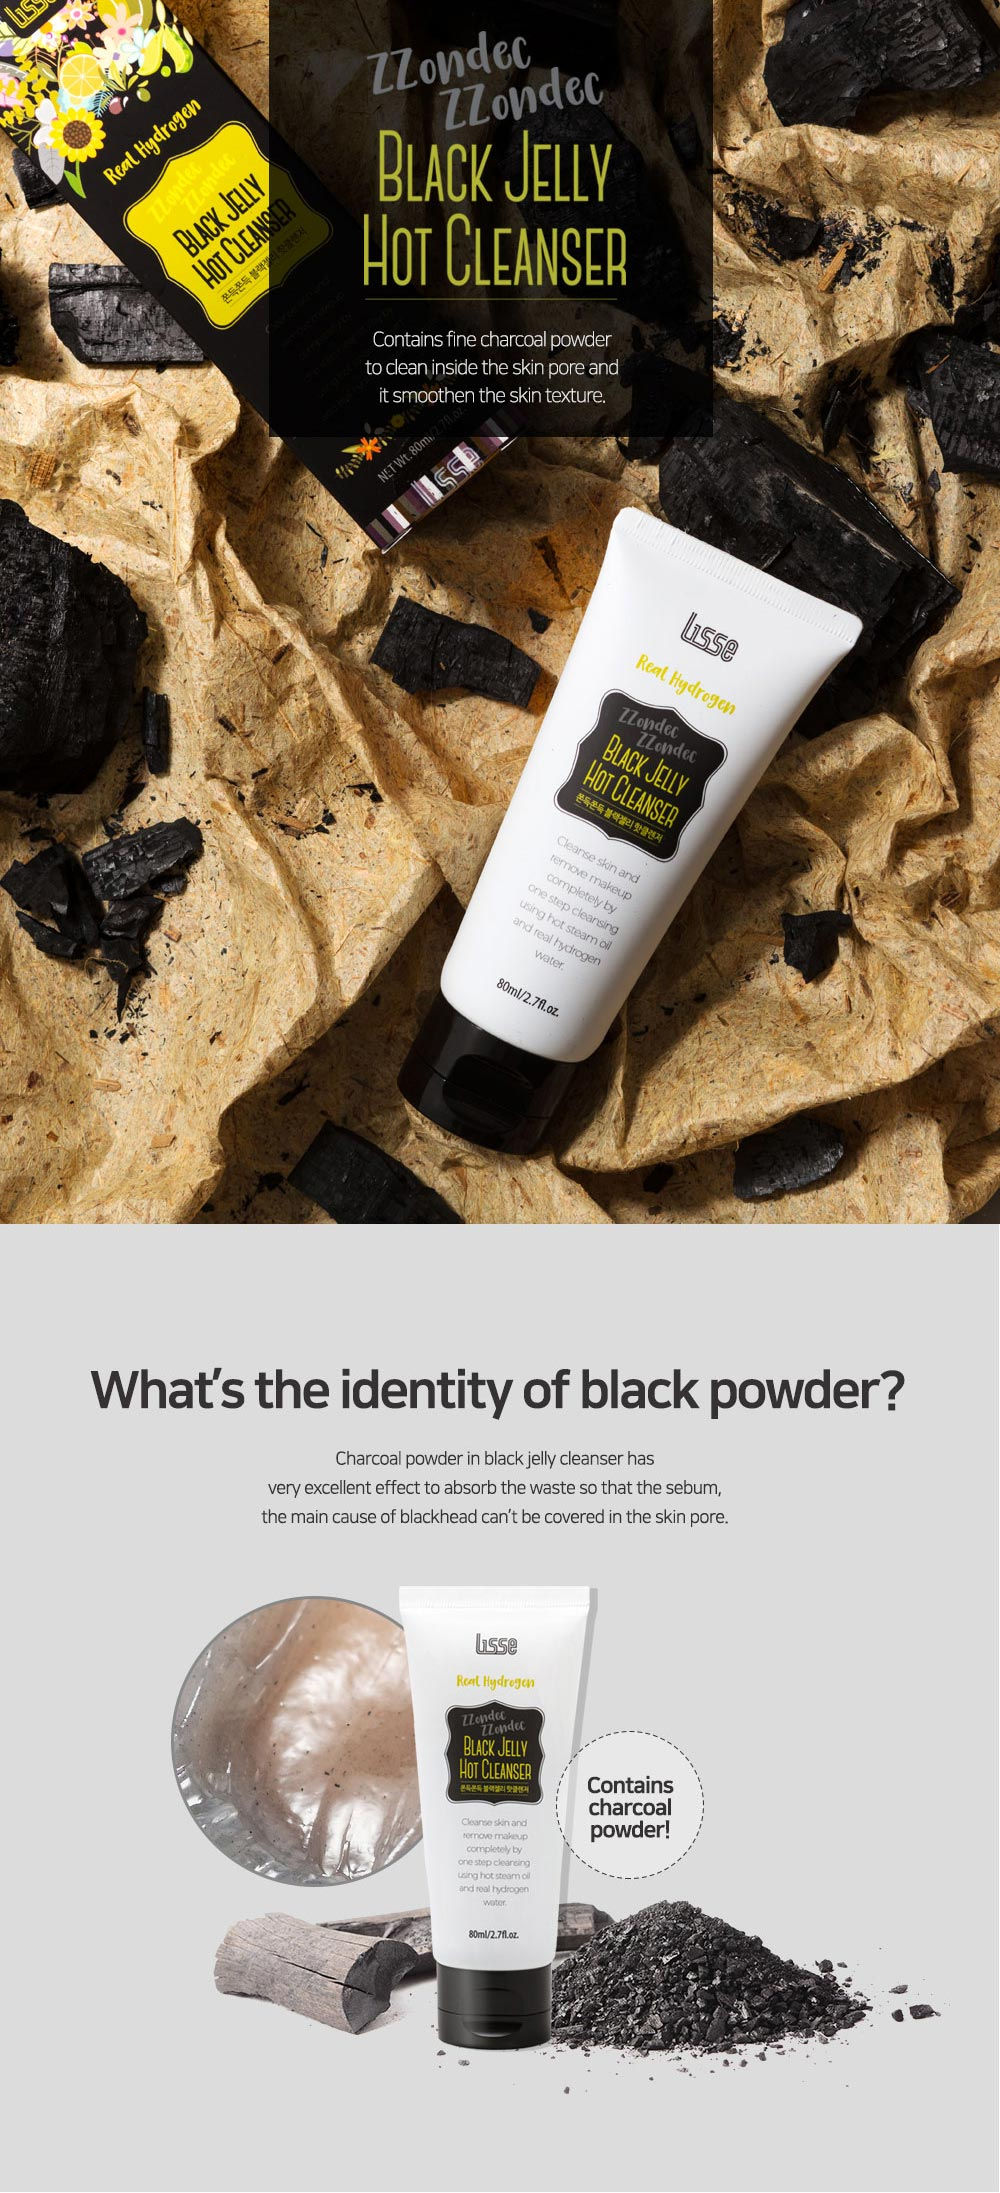 Black Jelly Hot Cleanser